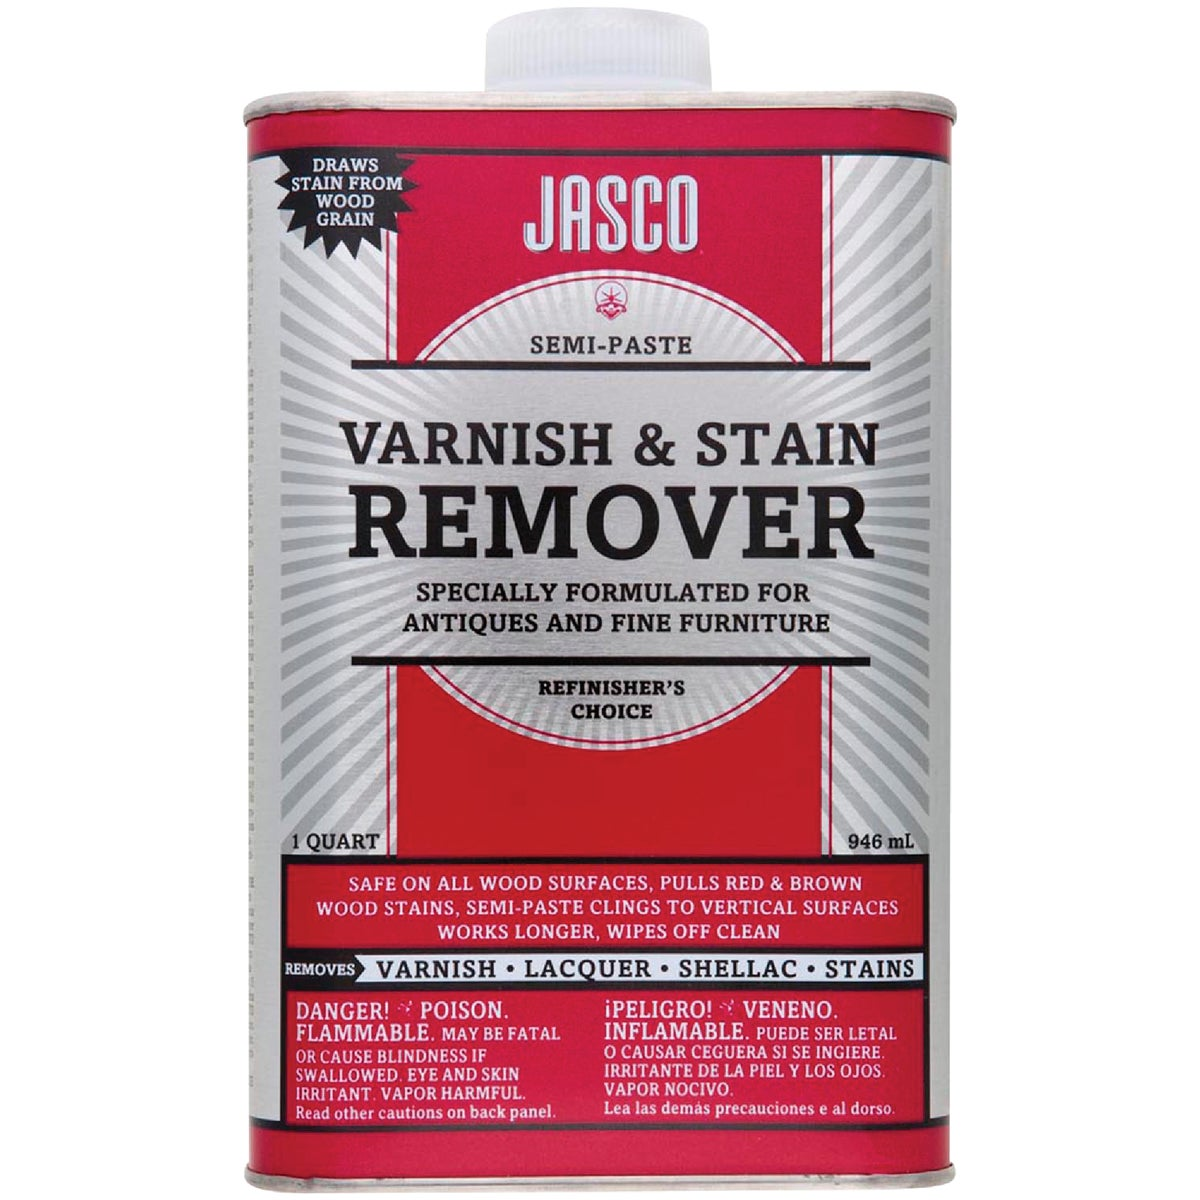 VARNISH & STAIN REMOVER